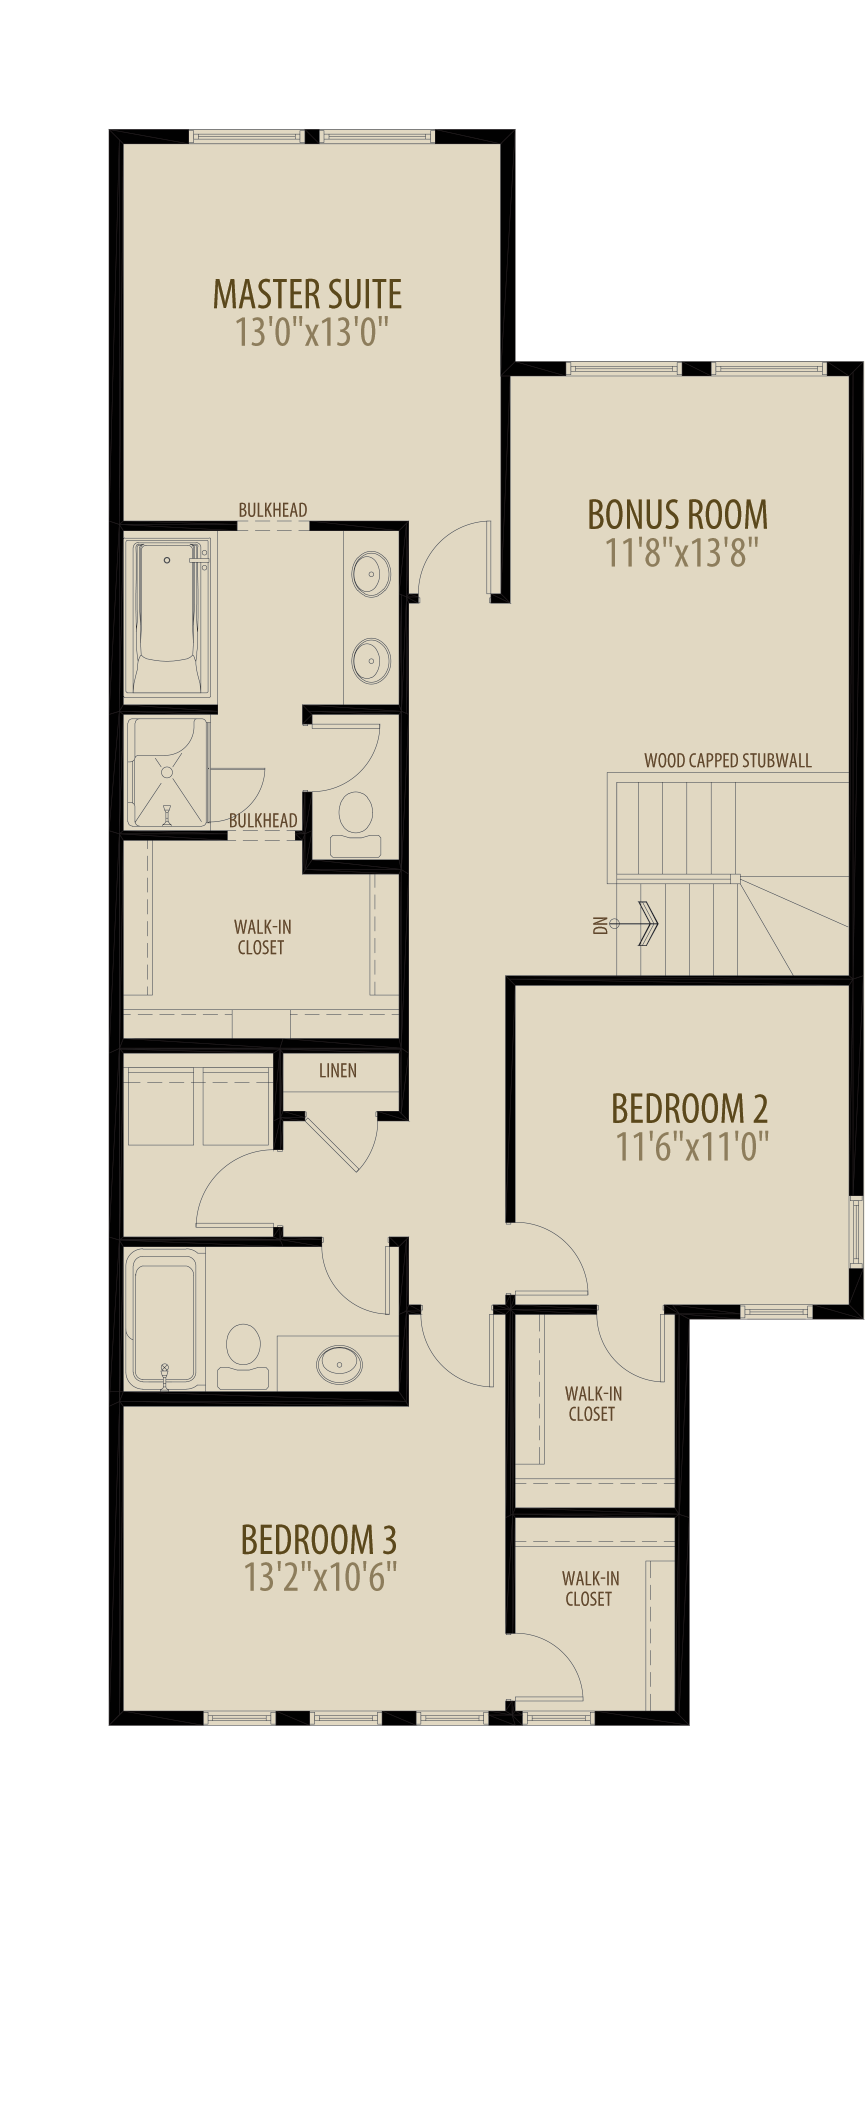 Expanded Bedrooms Adds 51 sq ft